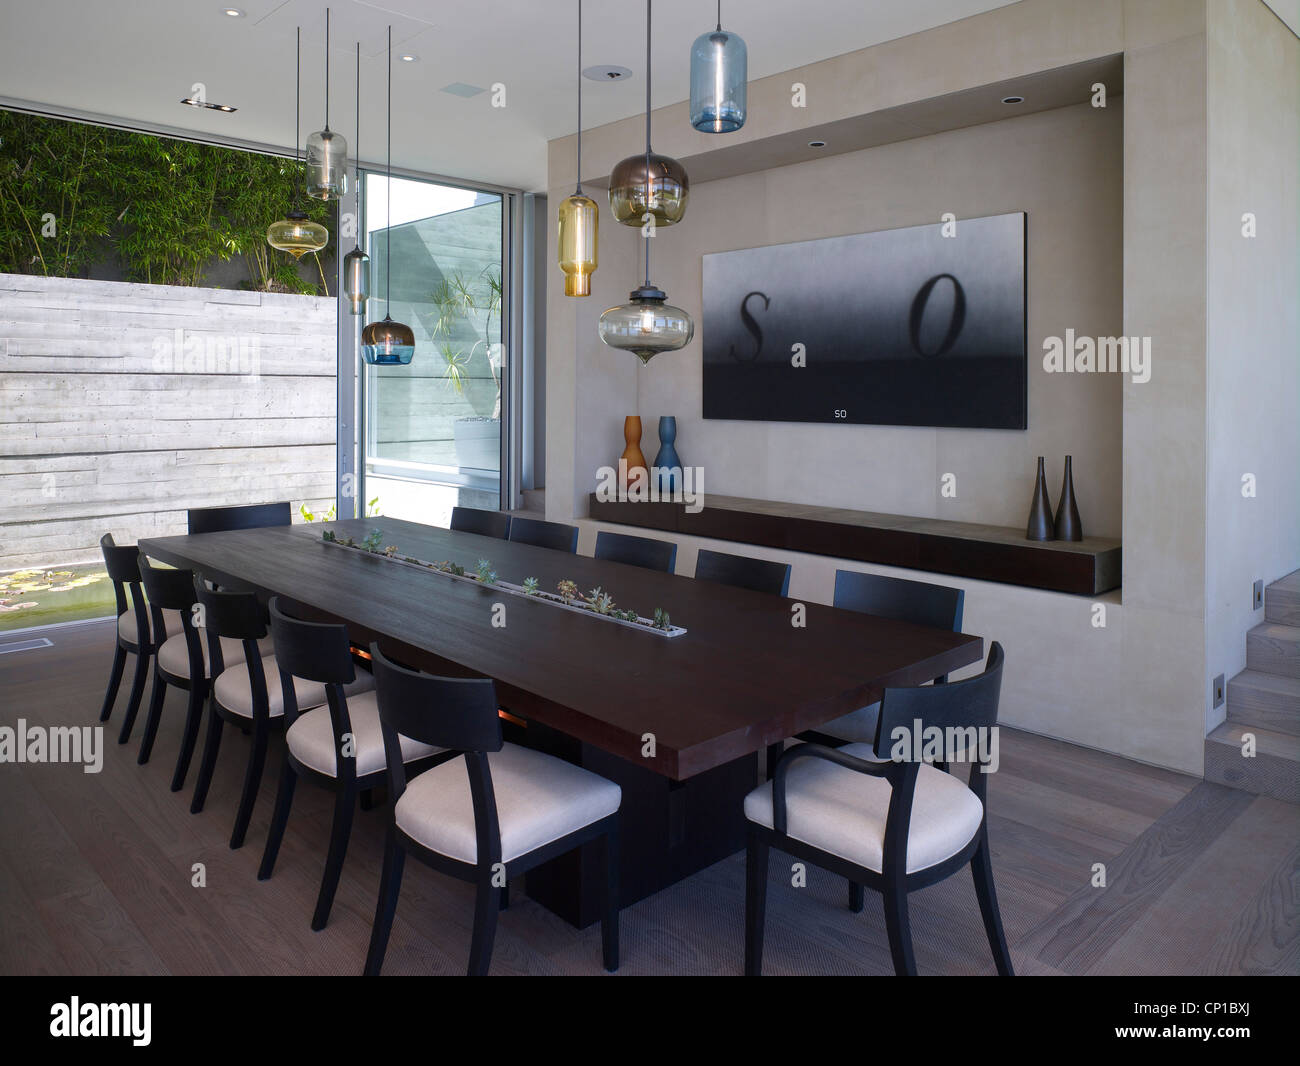 Dark Wood Dining Table With Assorted Glass Pendant Lights In Detached West  Hollywood Home, California, USA.